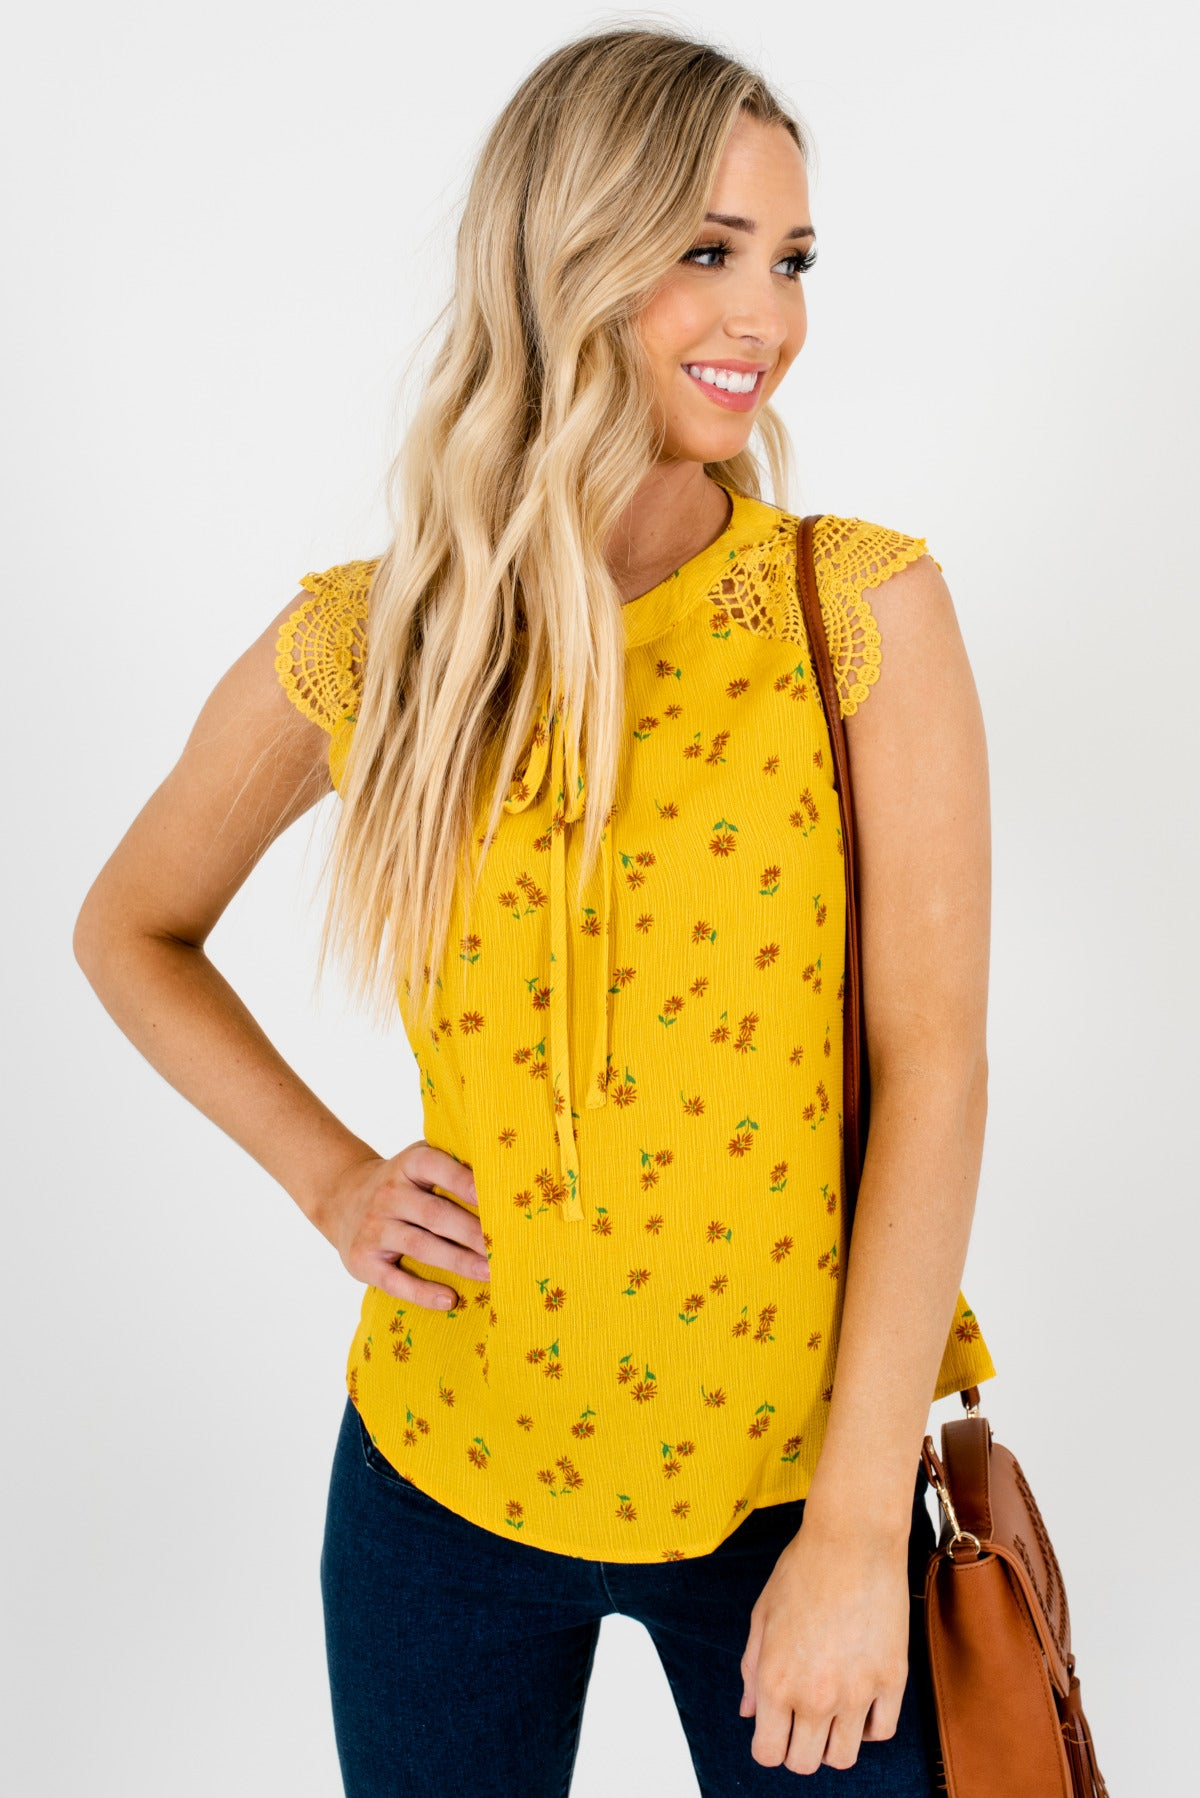 Mustard Yellow Green and Brown Floral Patterned Boutique Tops for Women